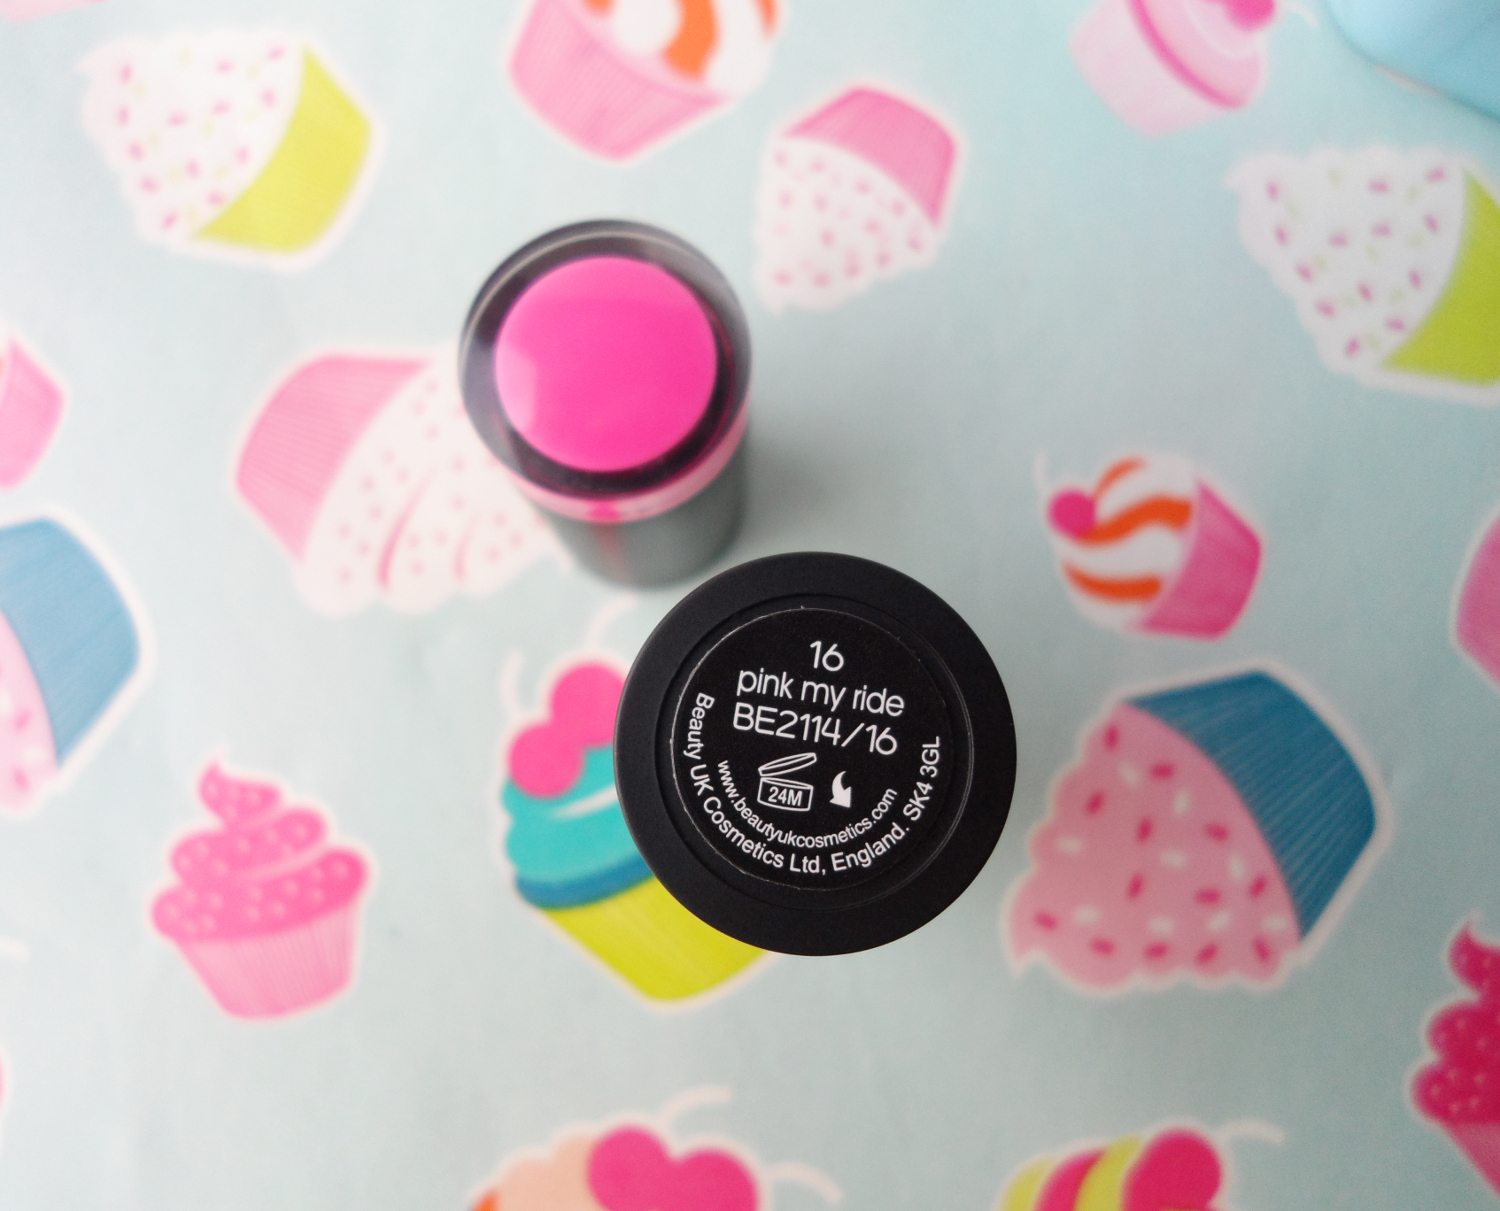 Beauty UK Lipstick pink my ride review